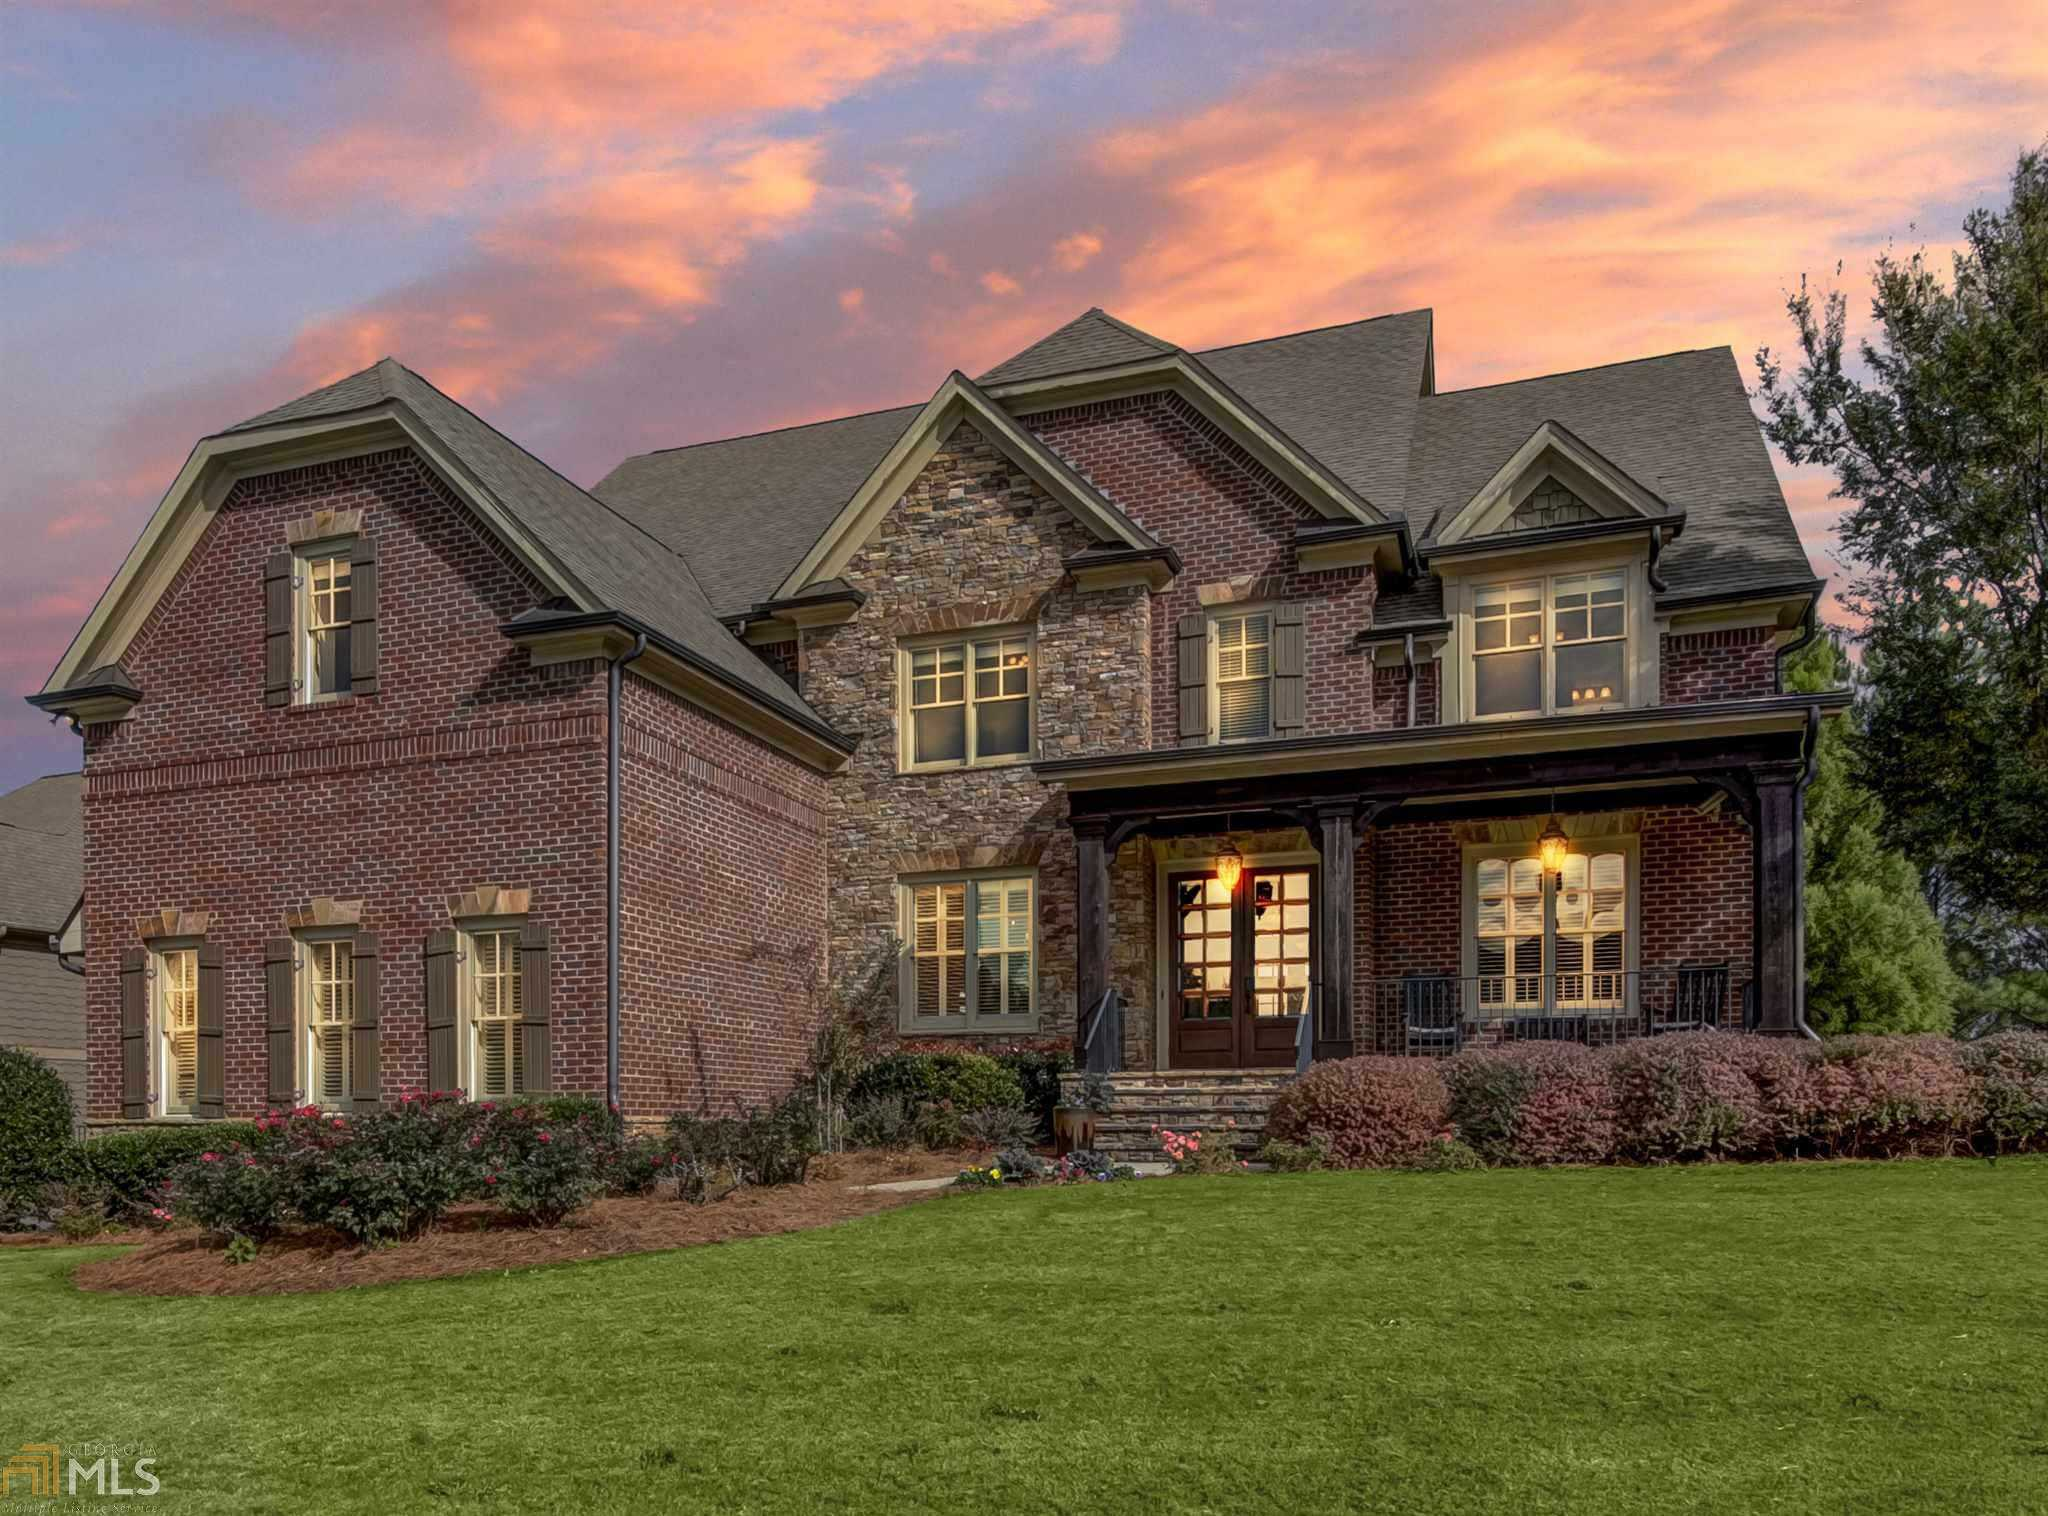 $1,050,000 - 5Br/7Ba -  for Sale in Overlook At Mcc, Kennesaw